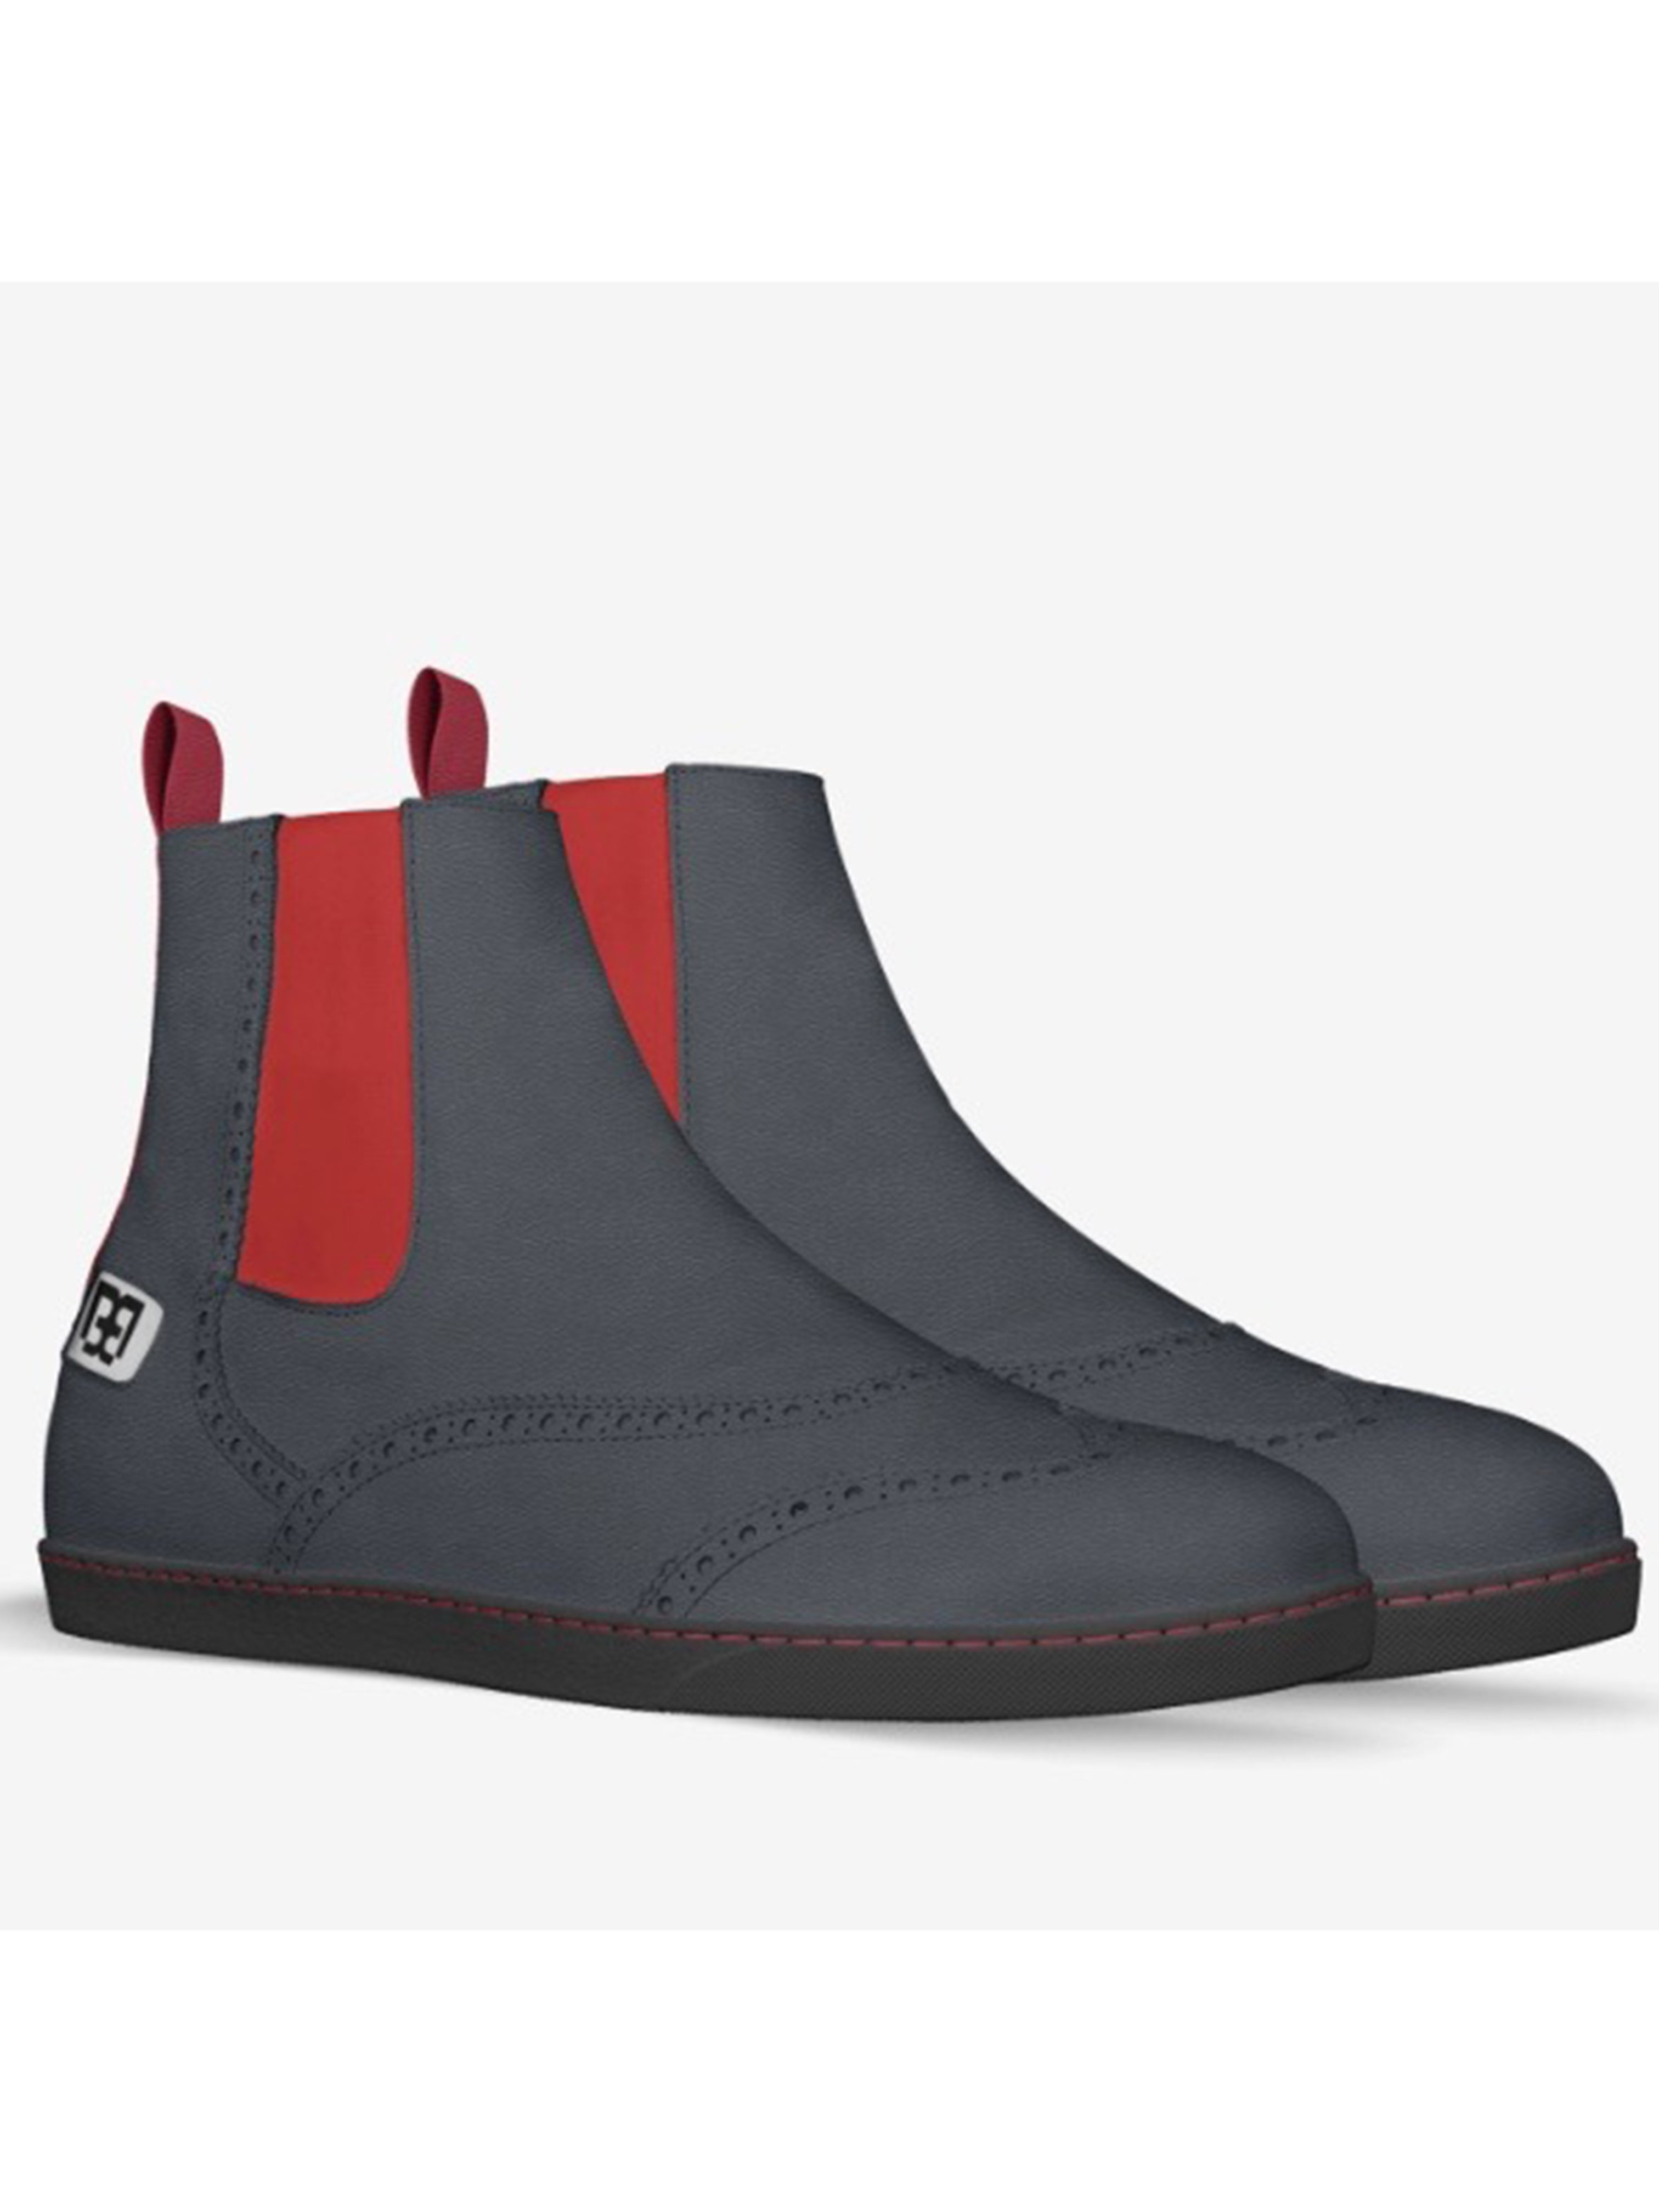 Oxford Boots with Red Side Panel - Brit Boss